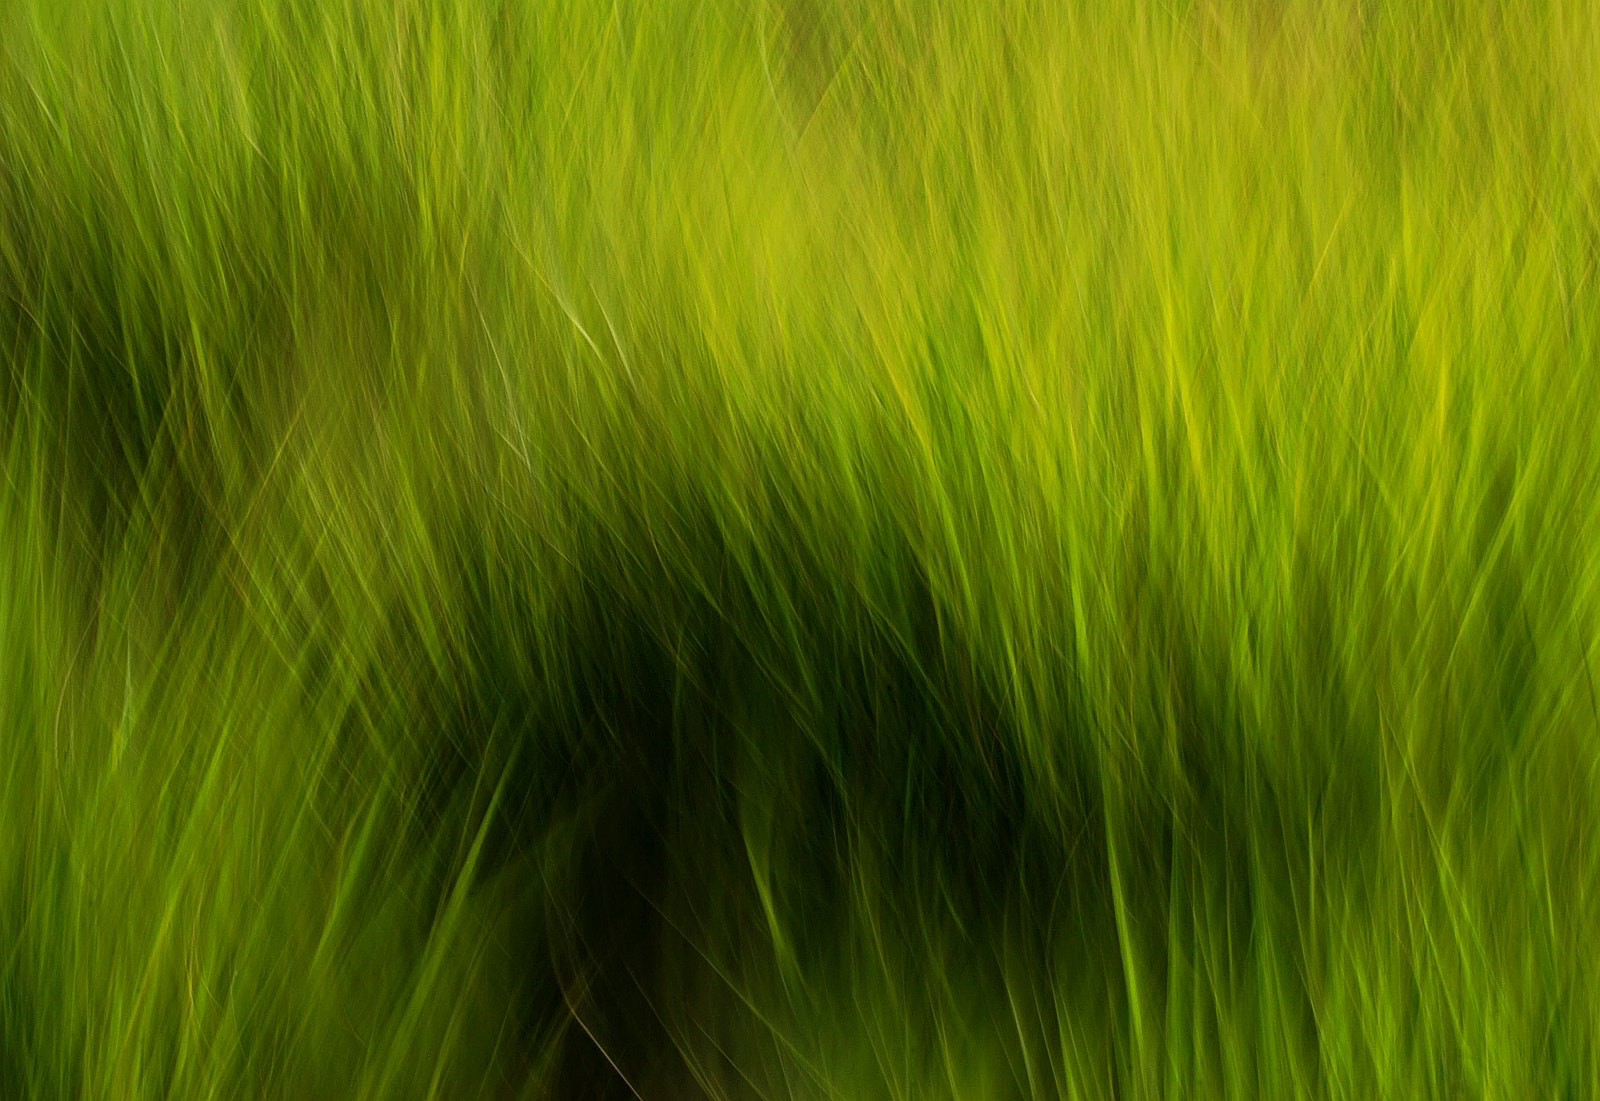 Photograph Green Grass by Lorenzo Cassina on 500px